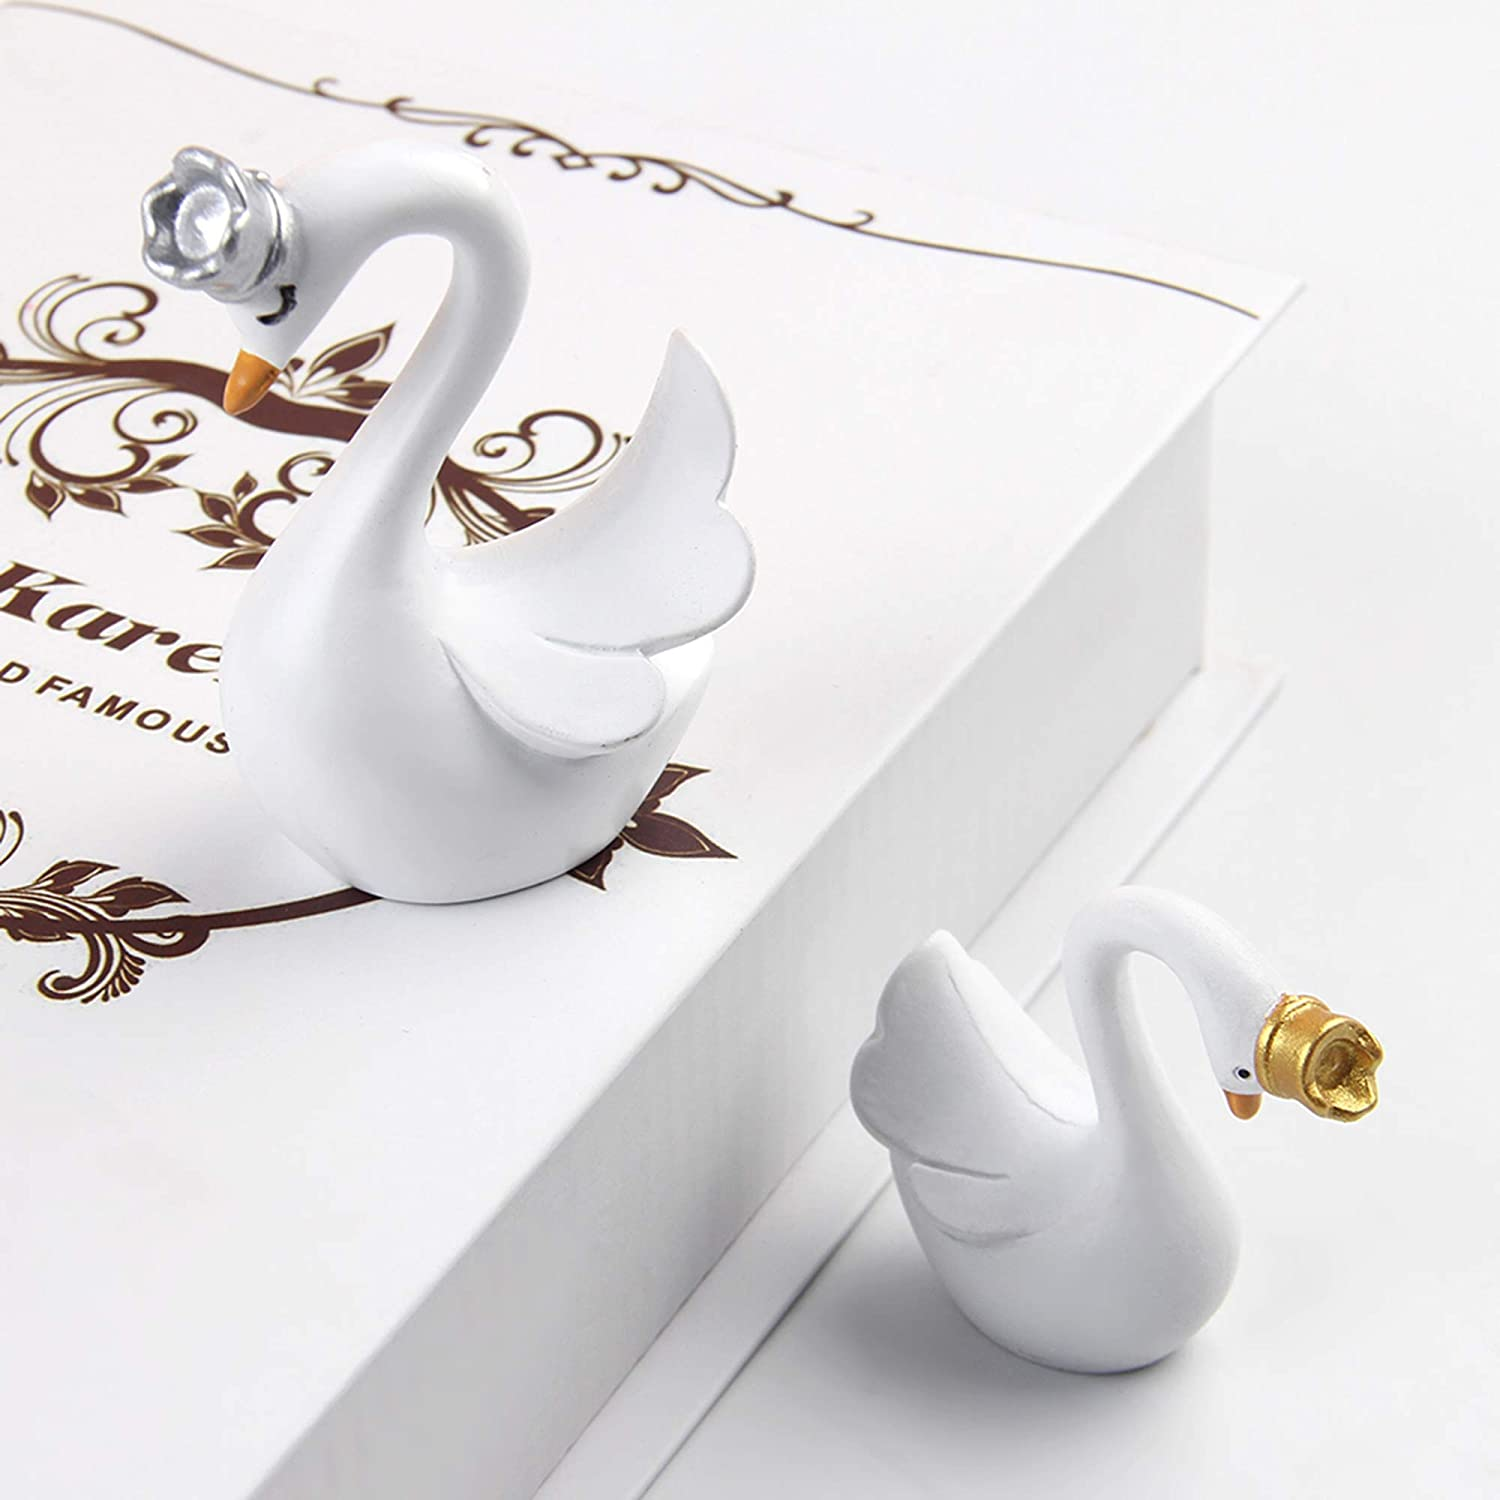 Newqueen Swan Figurine Cake Topper with Gold Crown Resin 3D Swan Doll Cake Decoration Baby Shower Birthday Party Cake Decoration